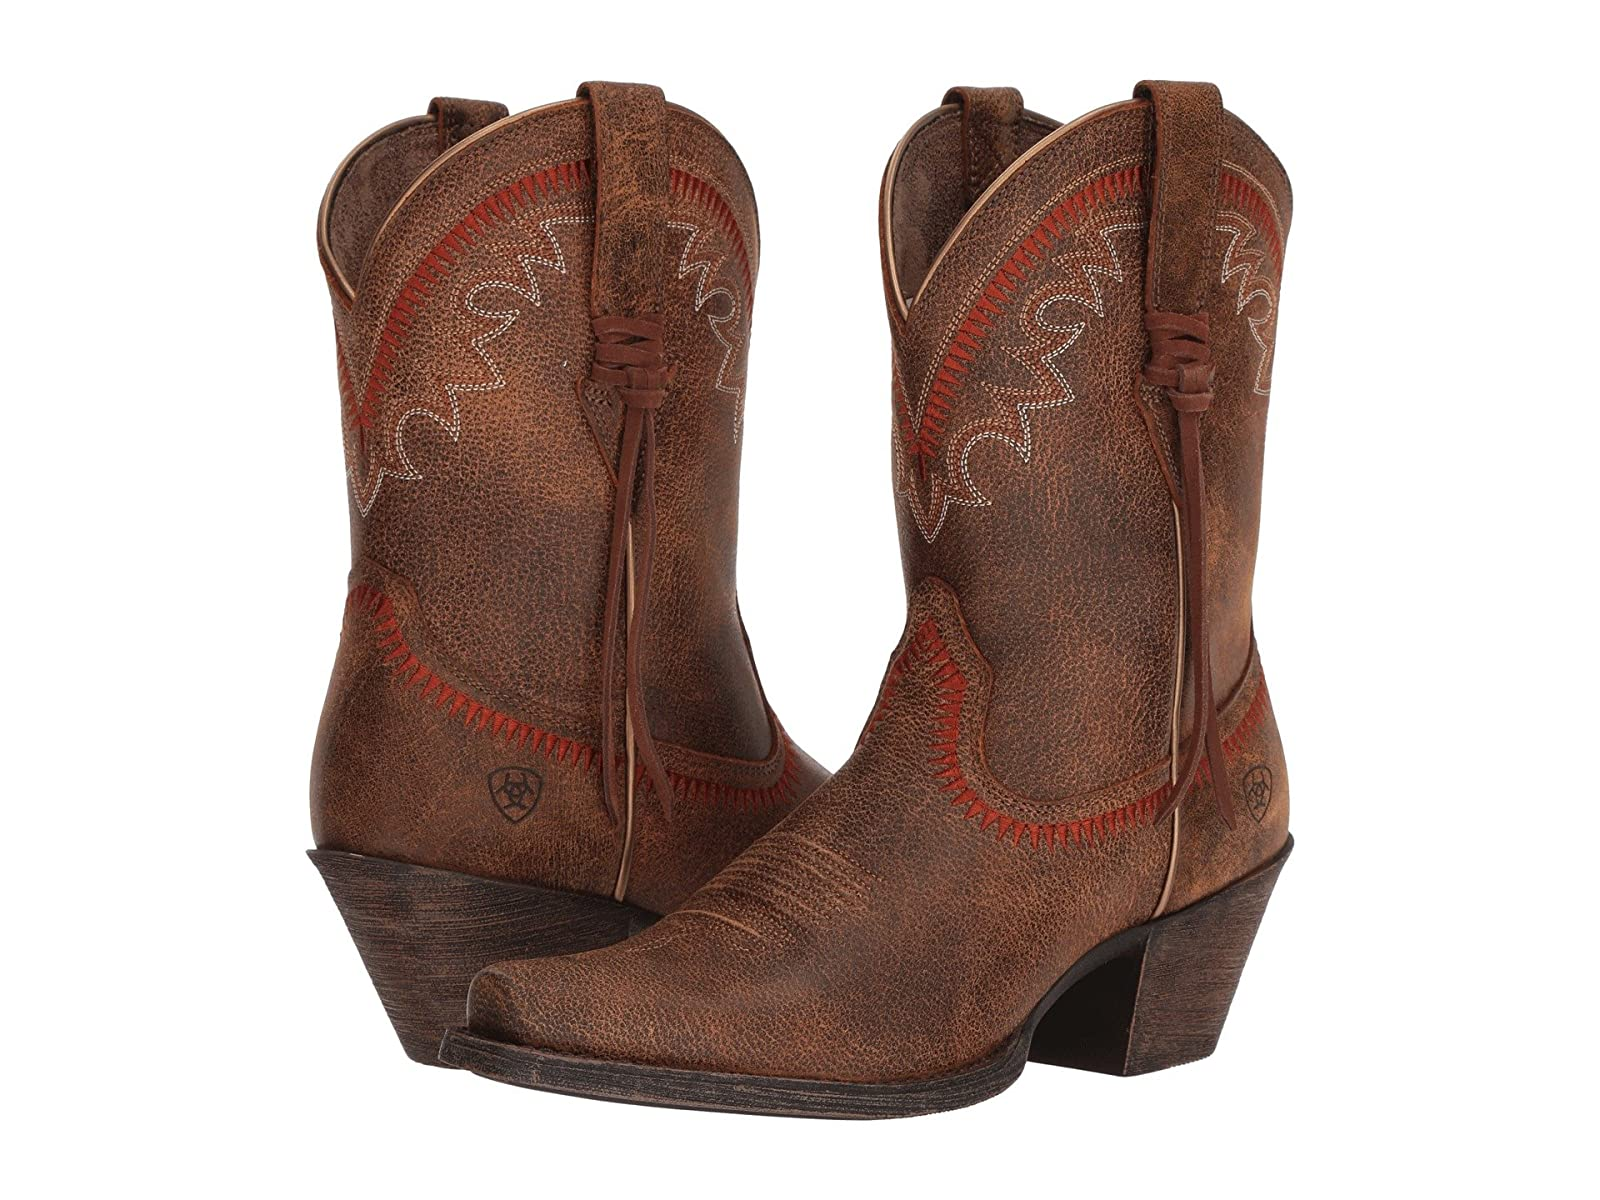 Ariat Round Up AztecSelling fashionable and eye-catching shoes